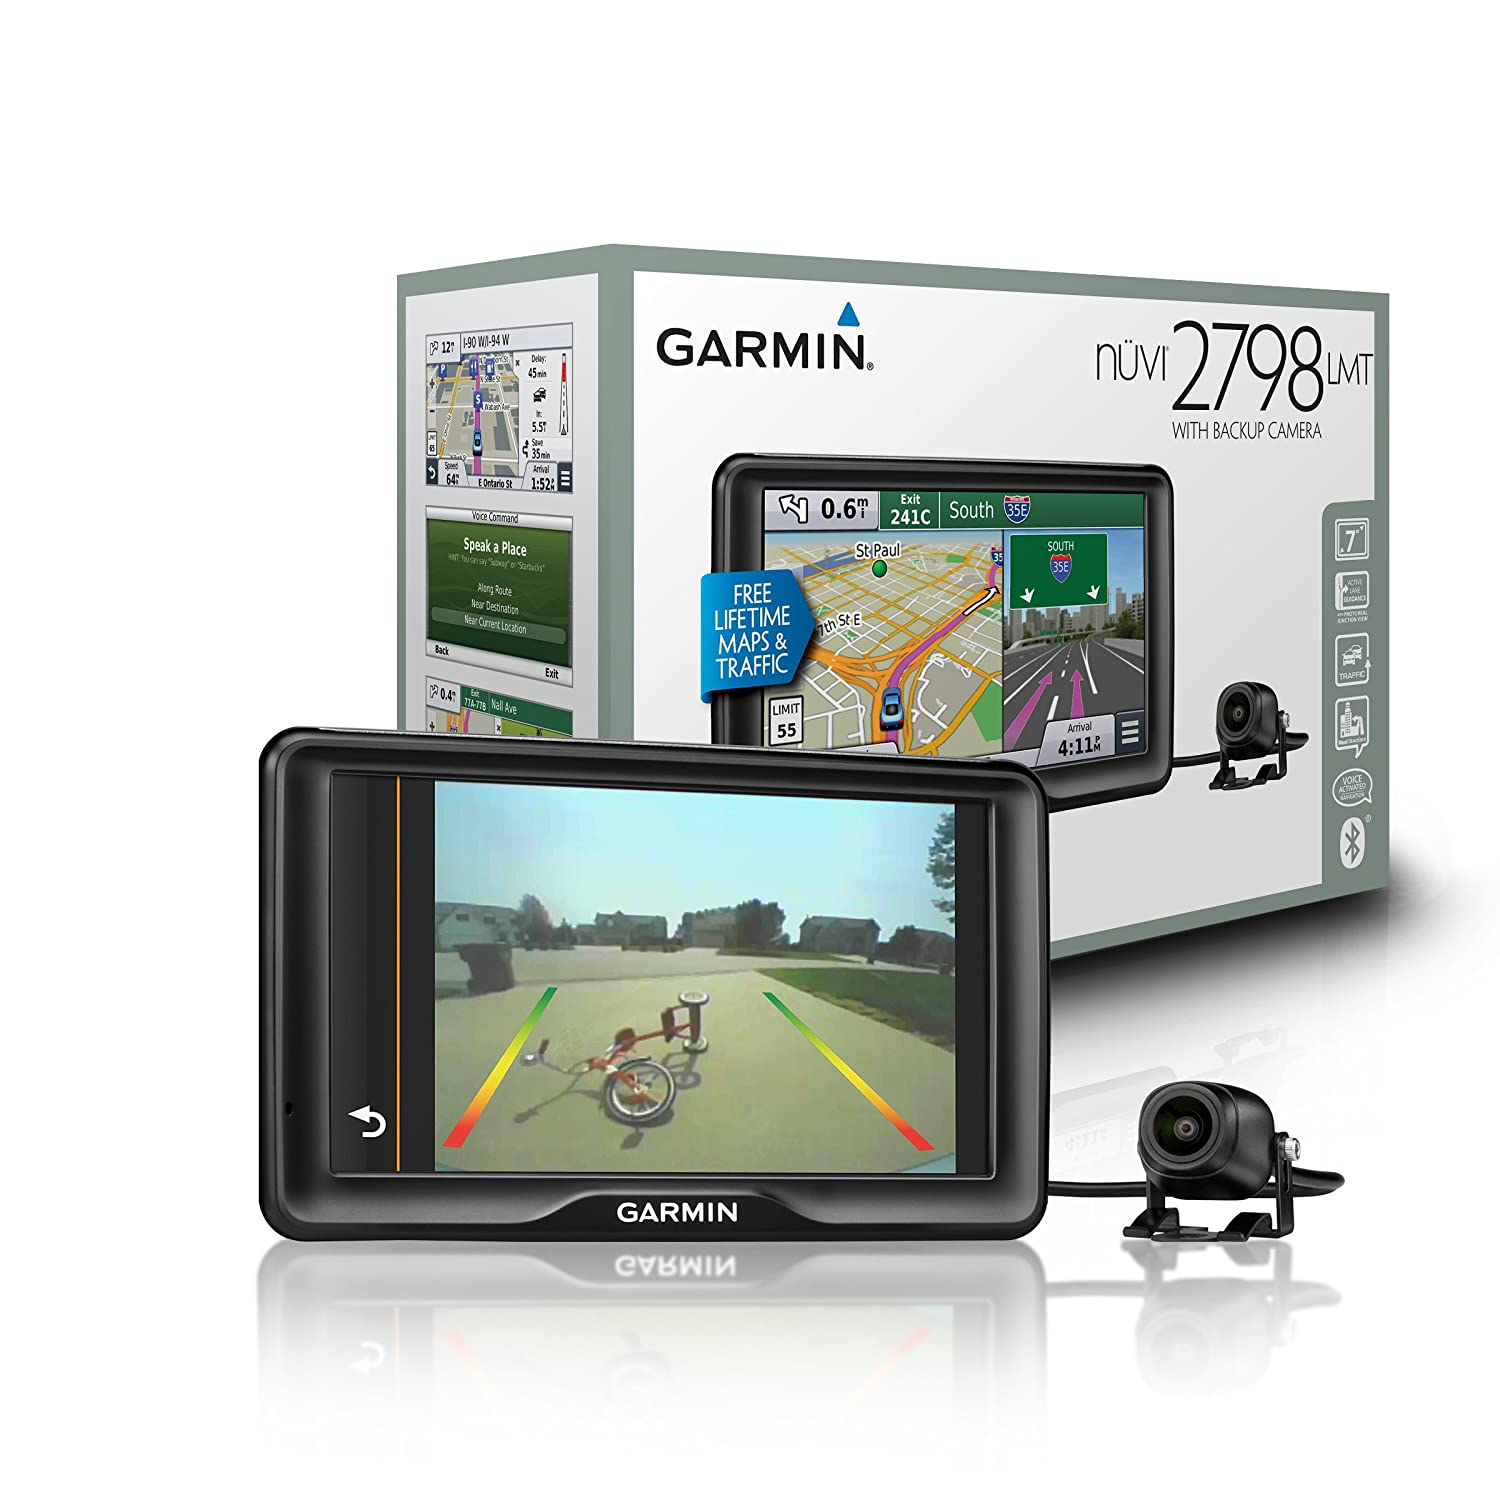 Amazoncom Garmin nvi 2798LMT Portable GPS with